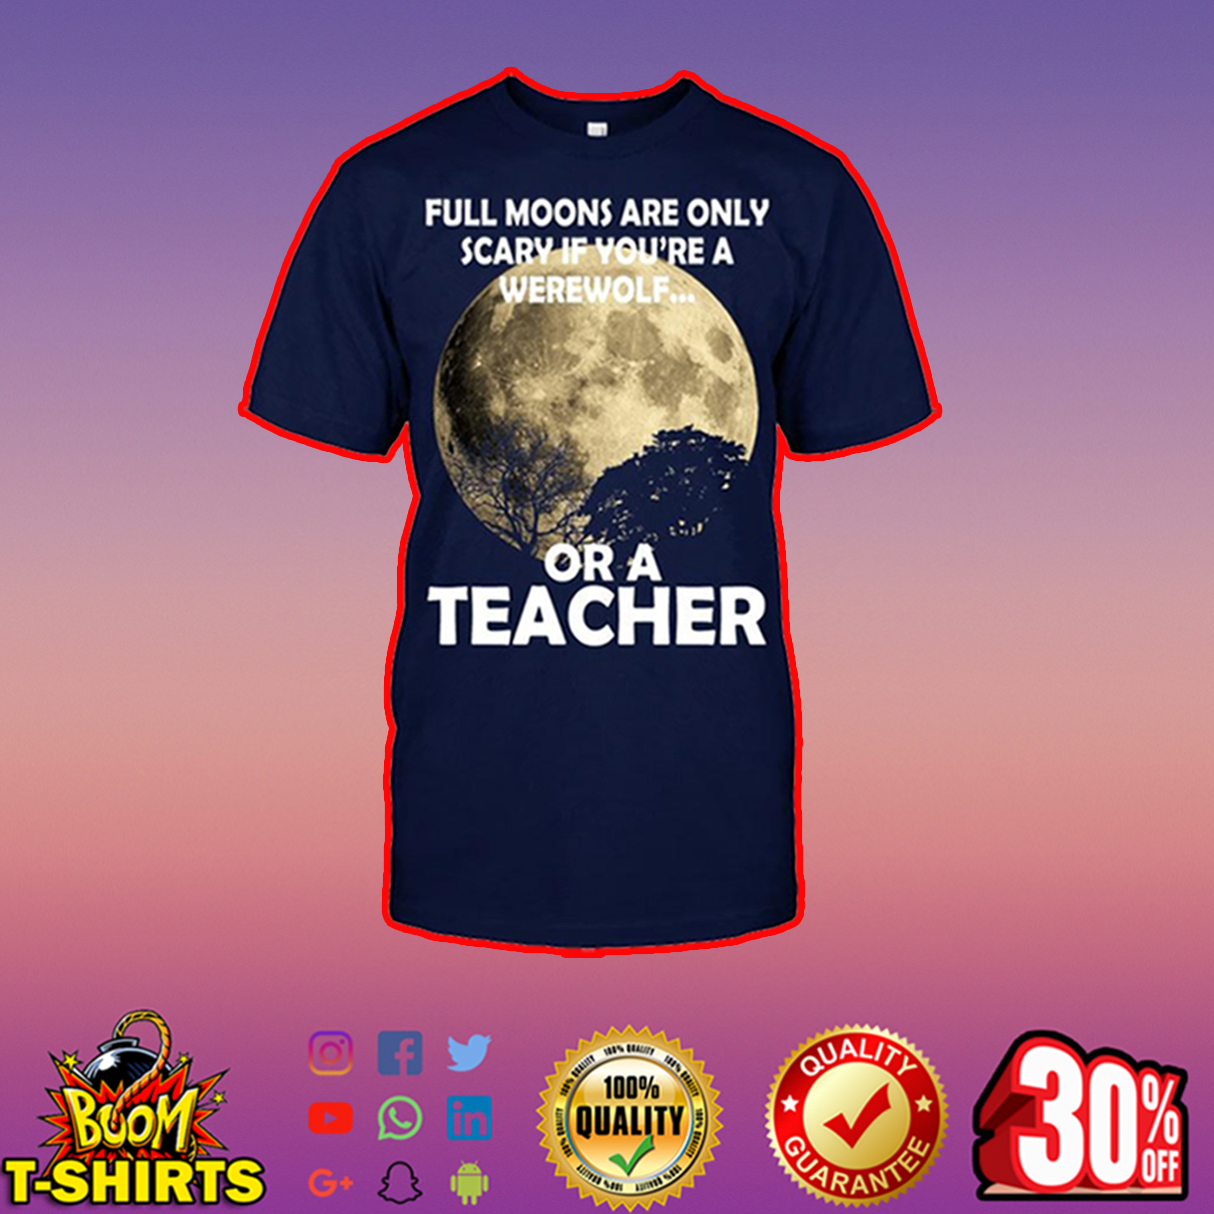 Full moons are only scary if you're a werewolf or a teacher t-shirt